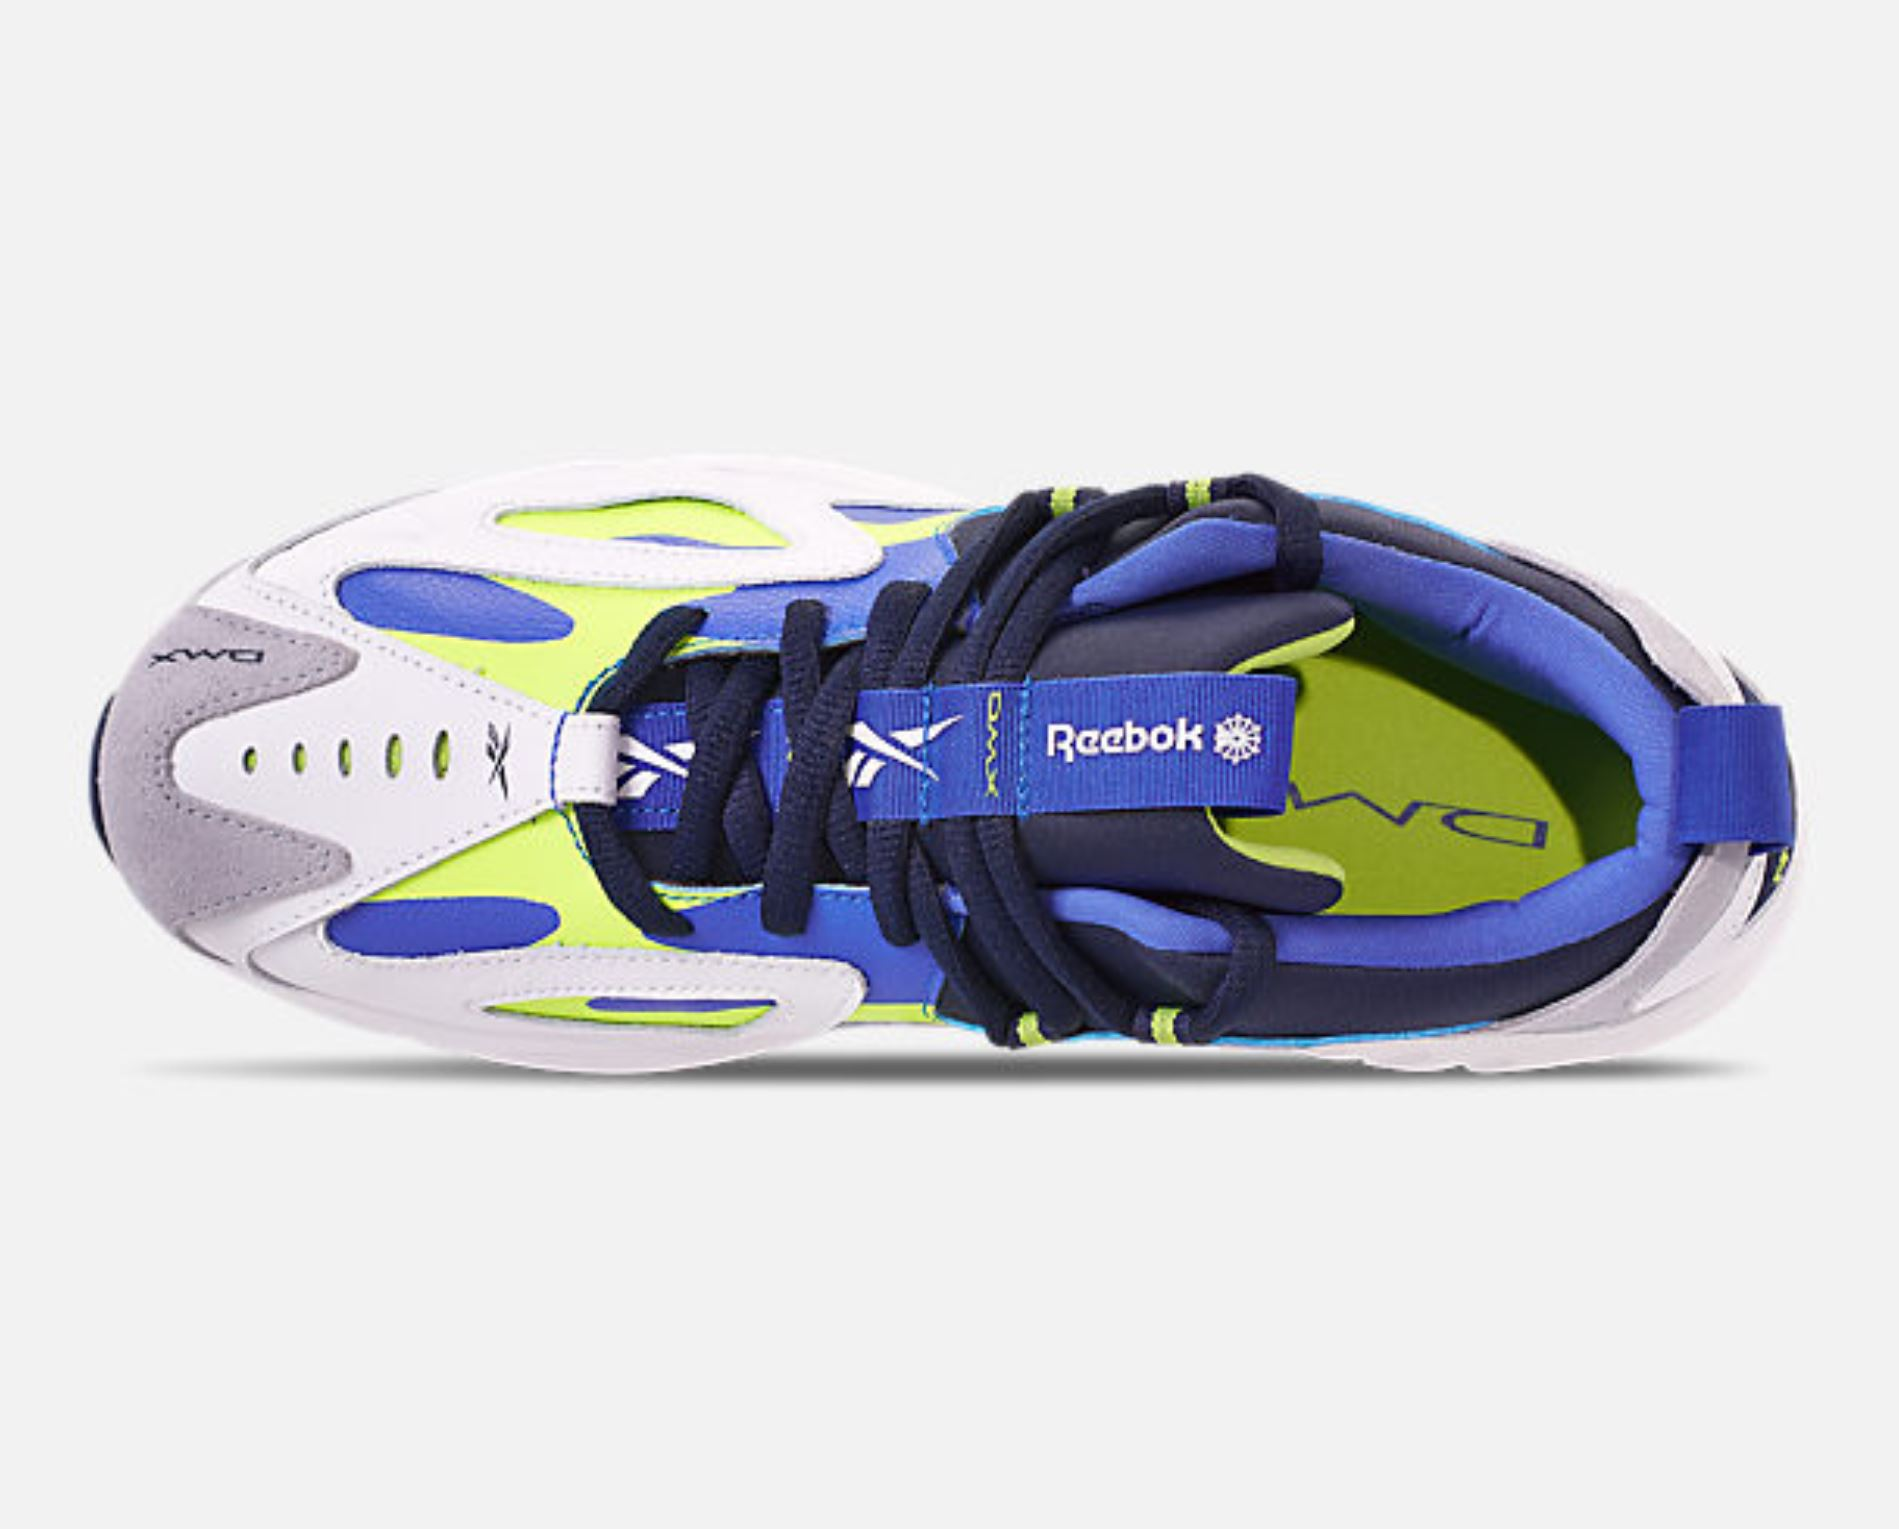 reebok dmx 1200 craig howard weartesters exclusive